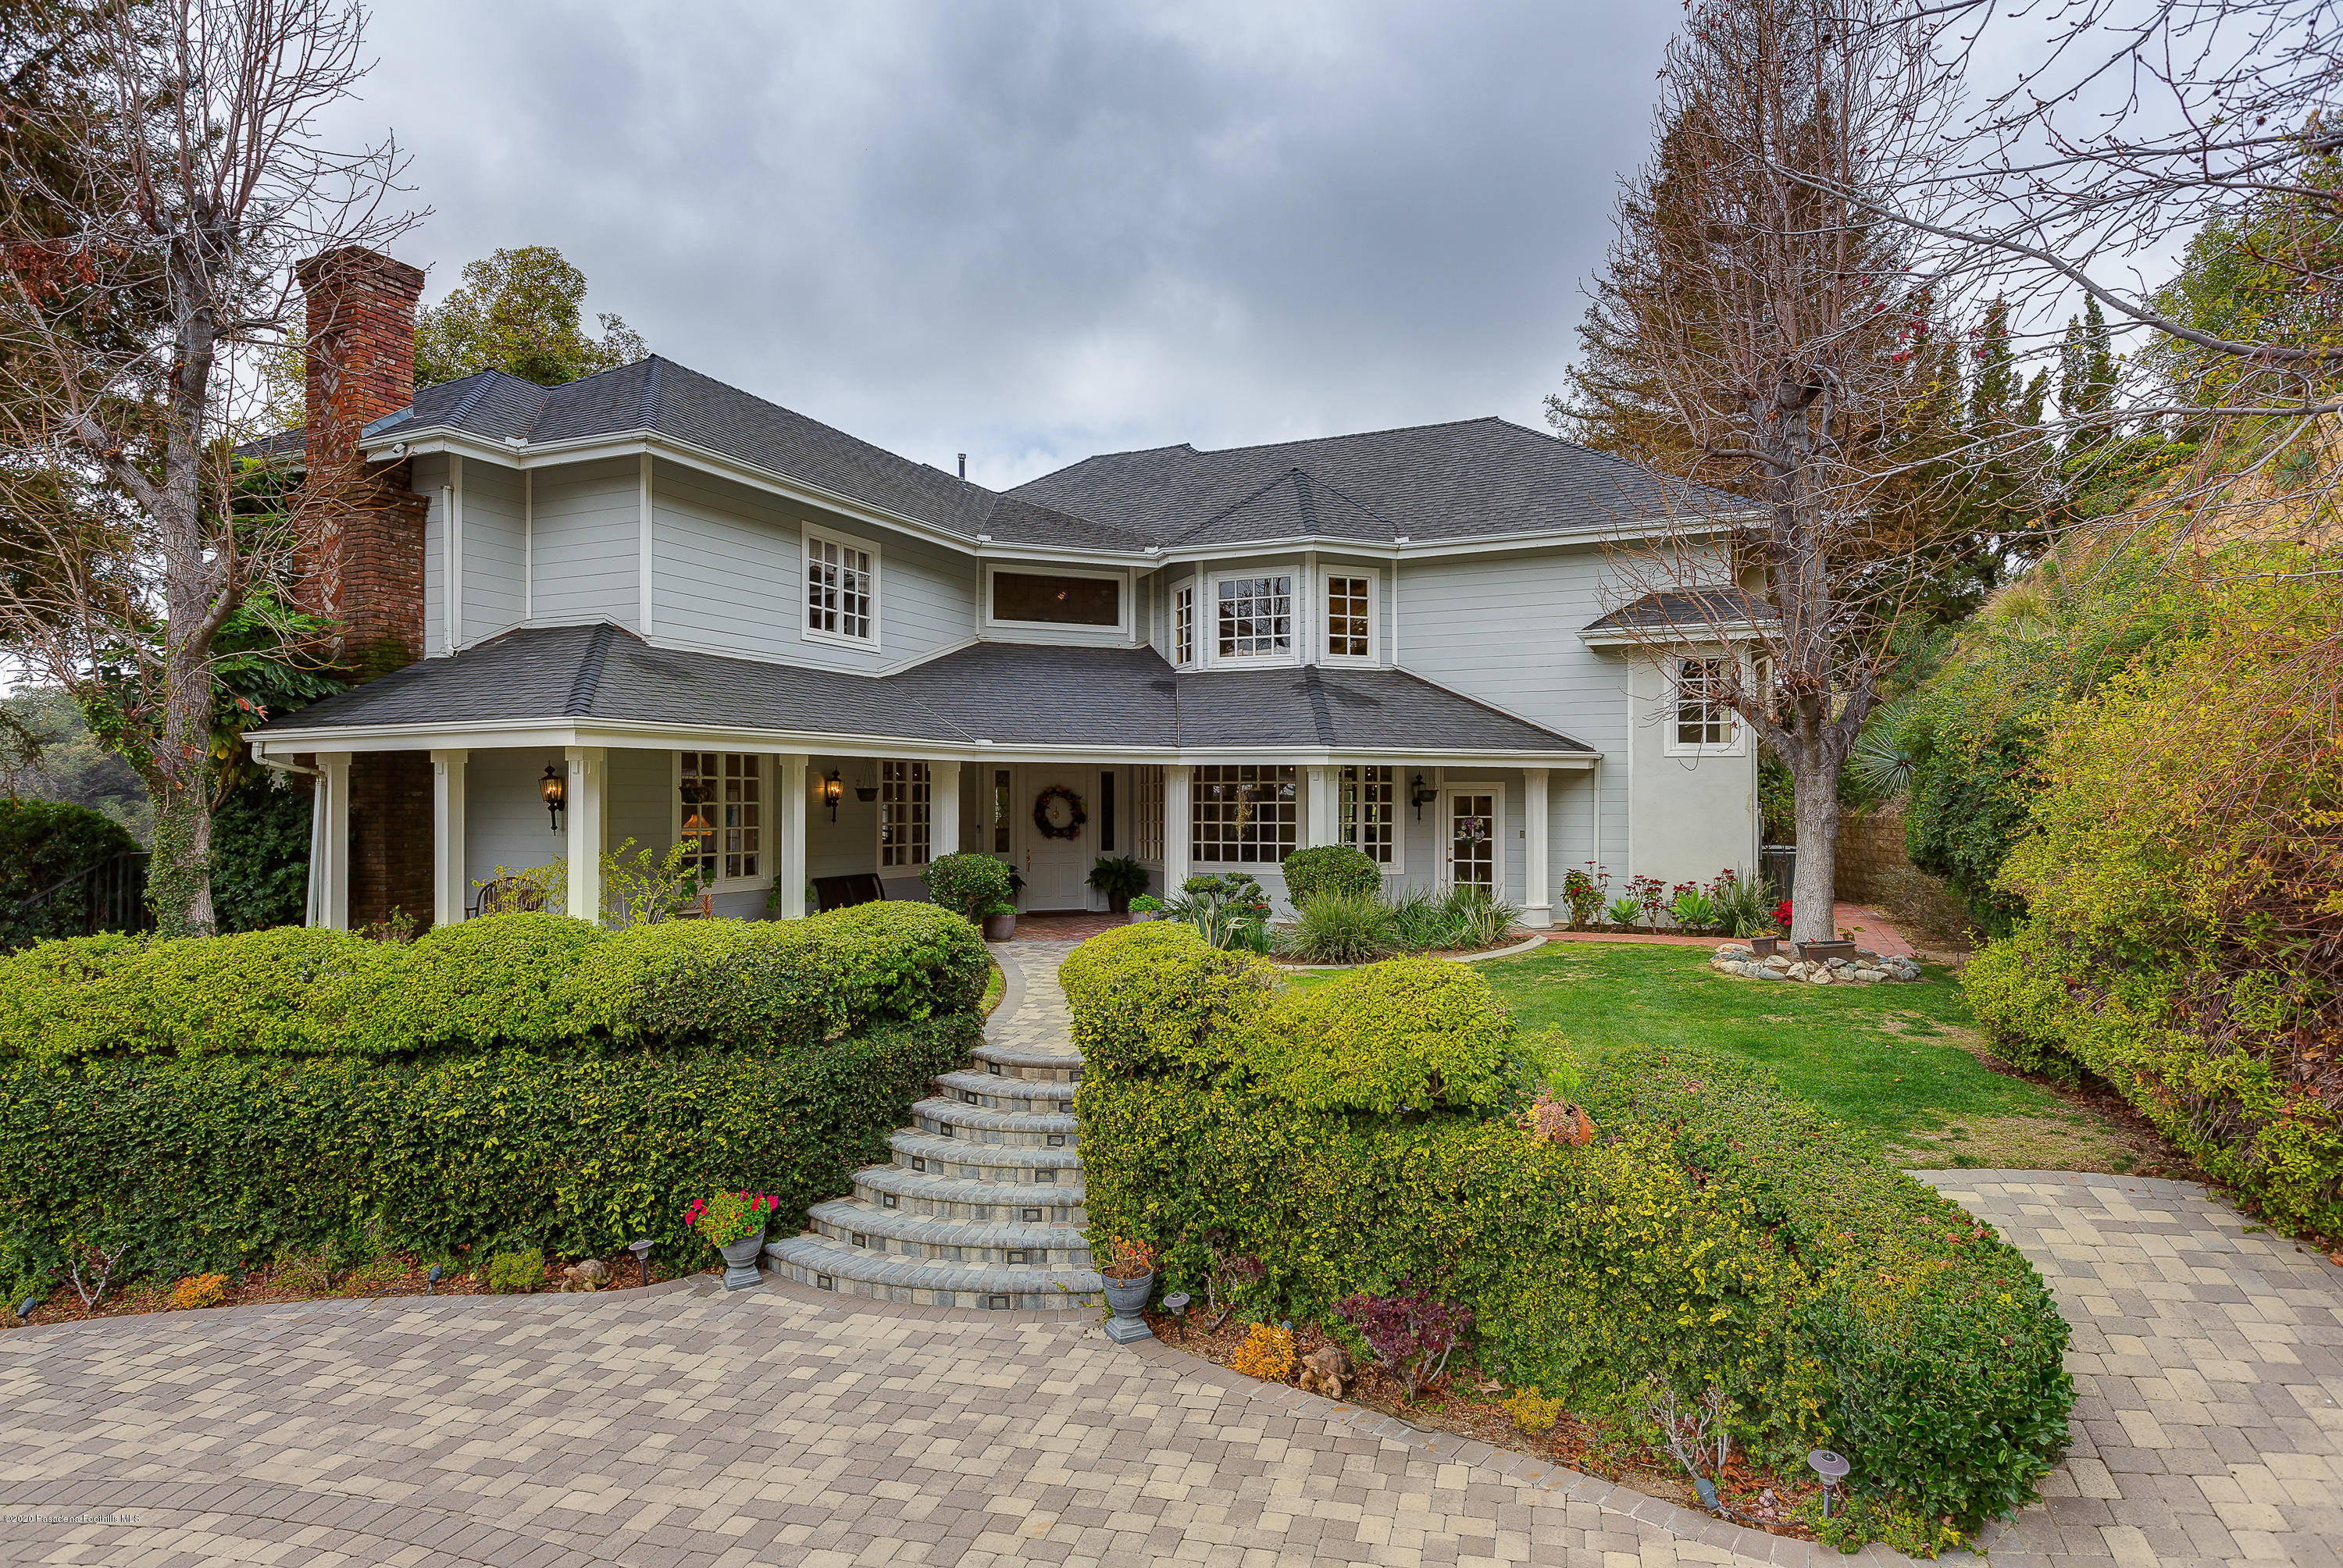 427 Long Canyon Road, Bradbury, California